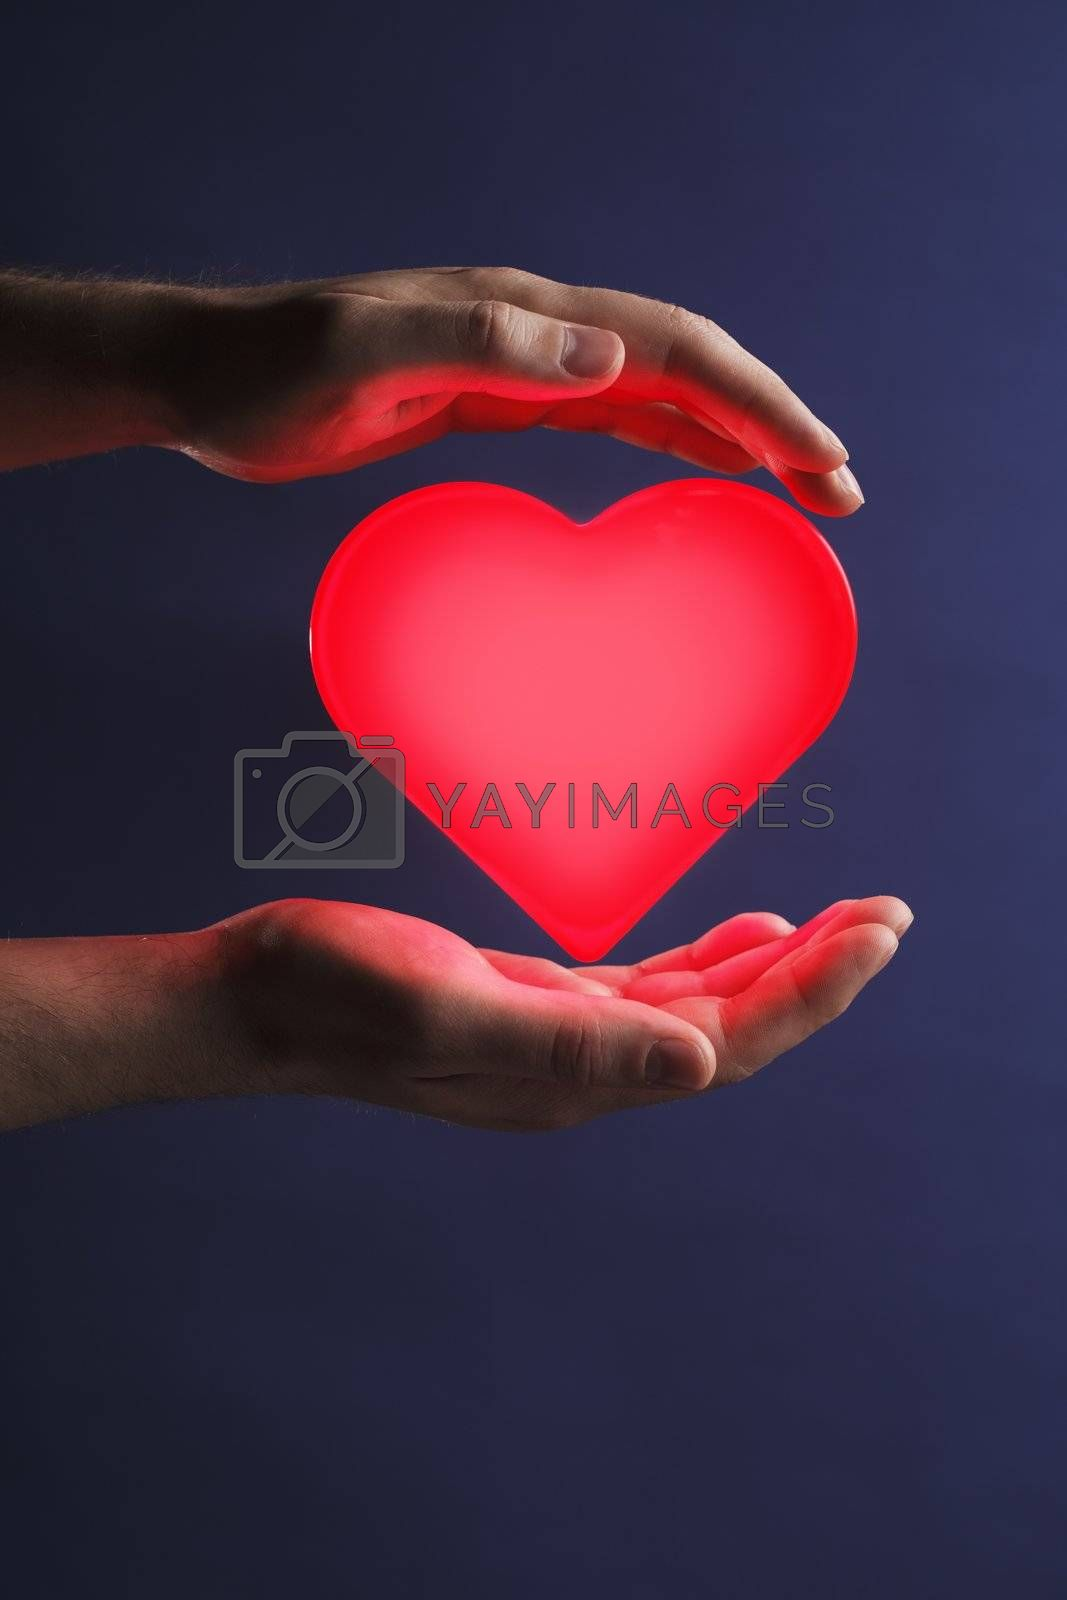 Man holding a glowing red heart in his hands